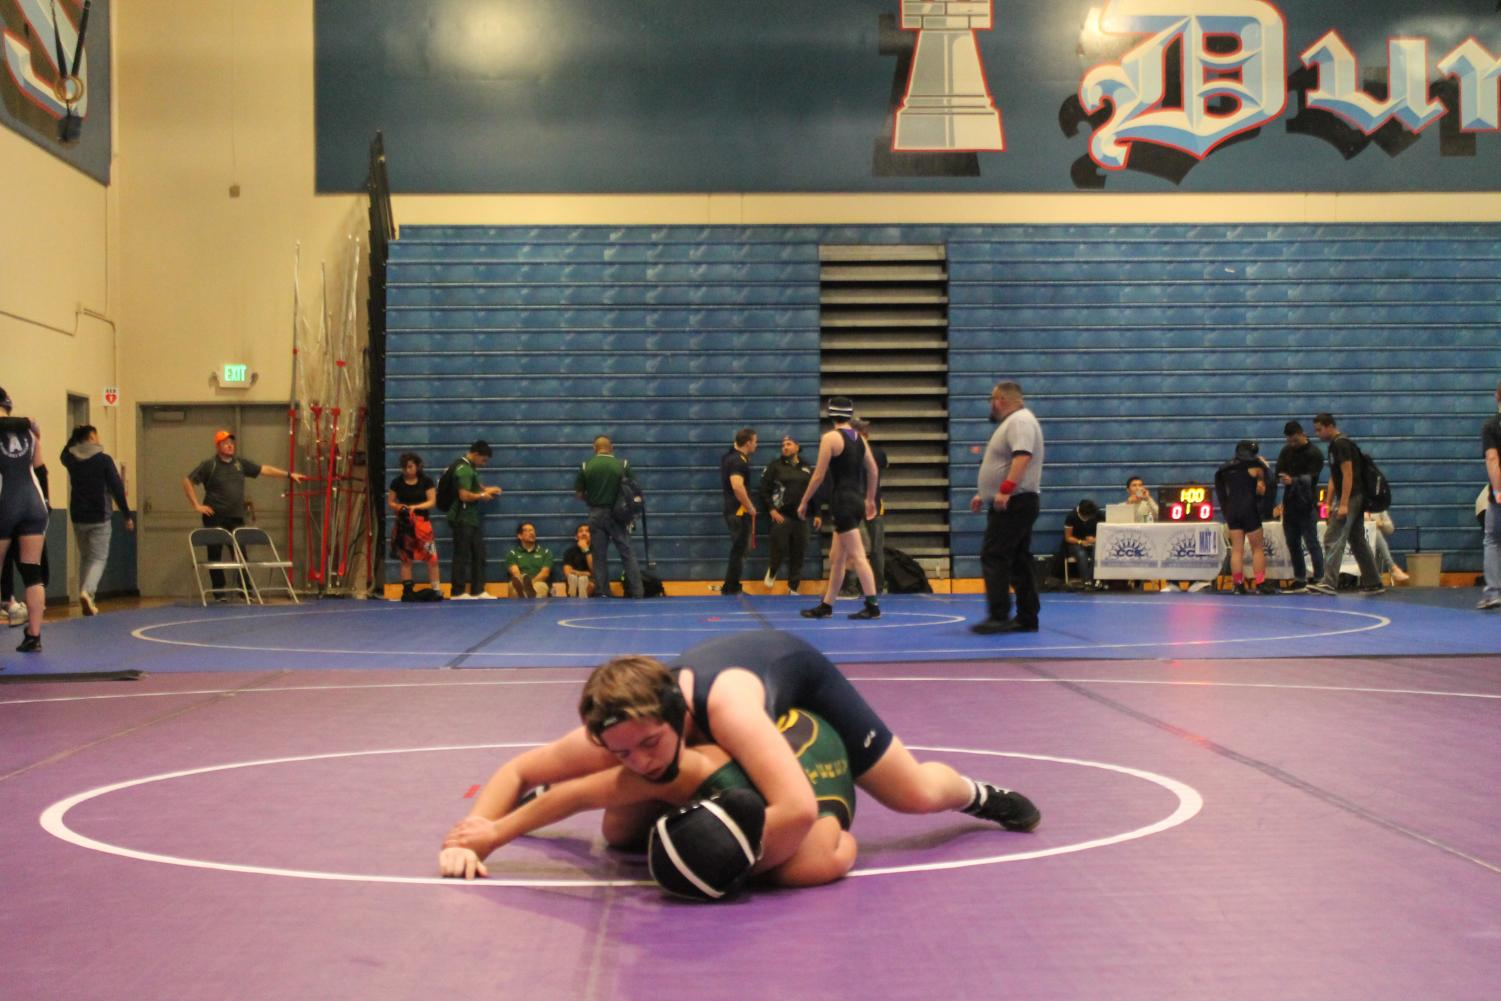 On February 2nd and 3rd, the Lincoln girls wrestling team participated in the CCS tournament.